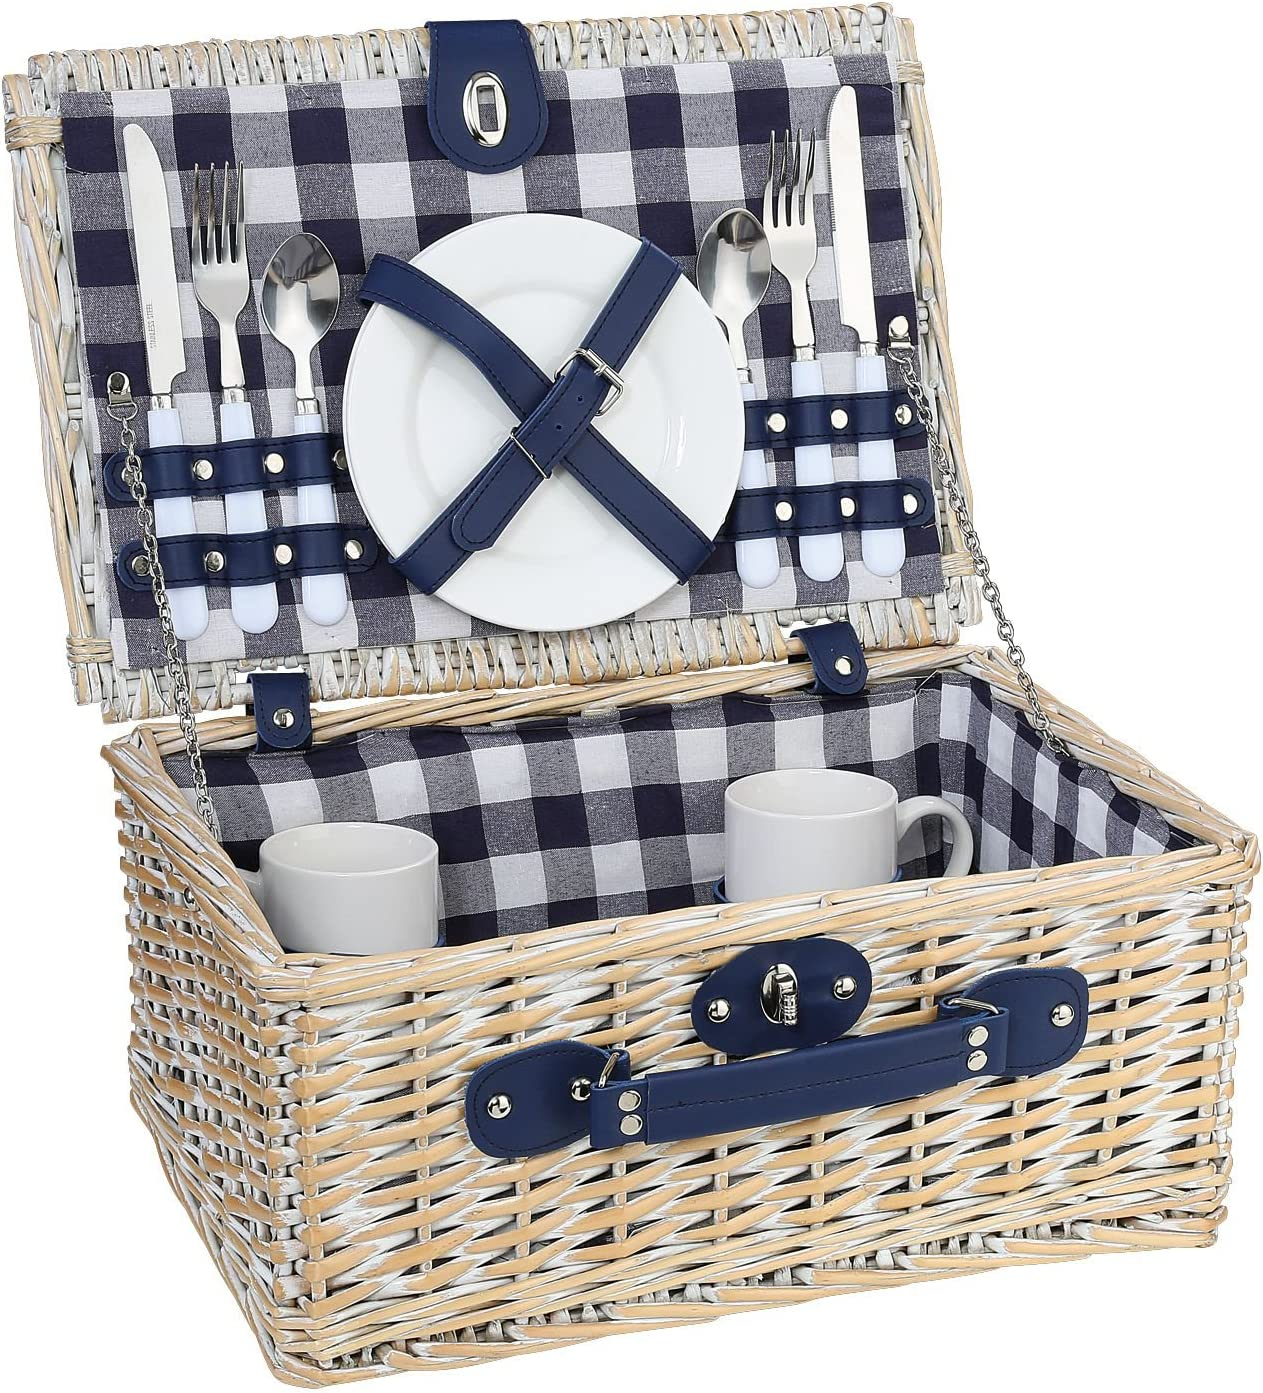 Cilio low-pricing Excellence Arolo Picnic Basket White M 156645